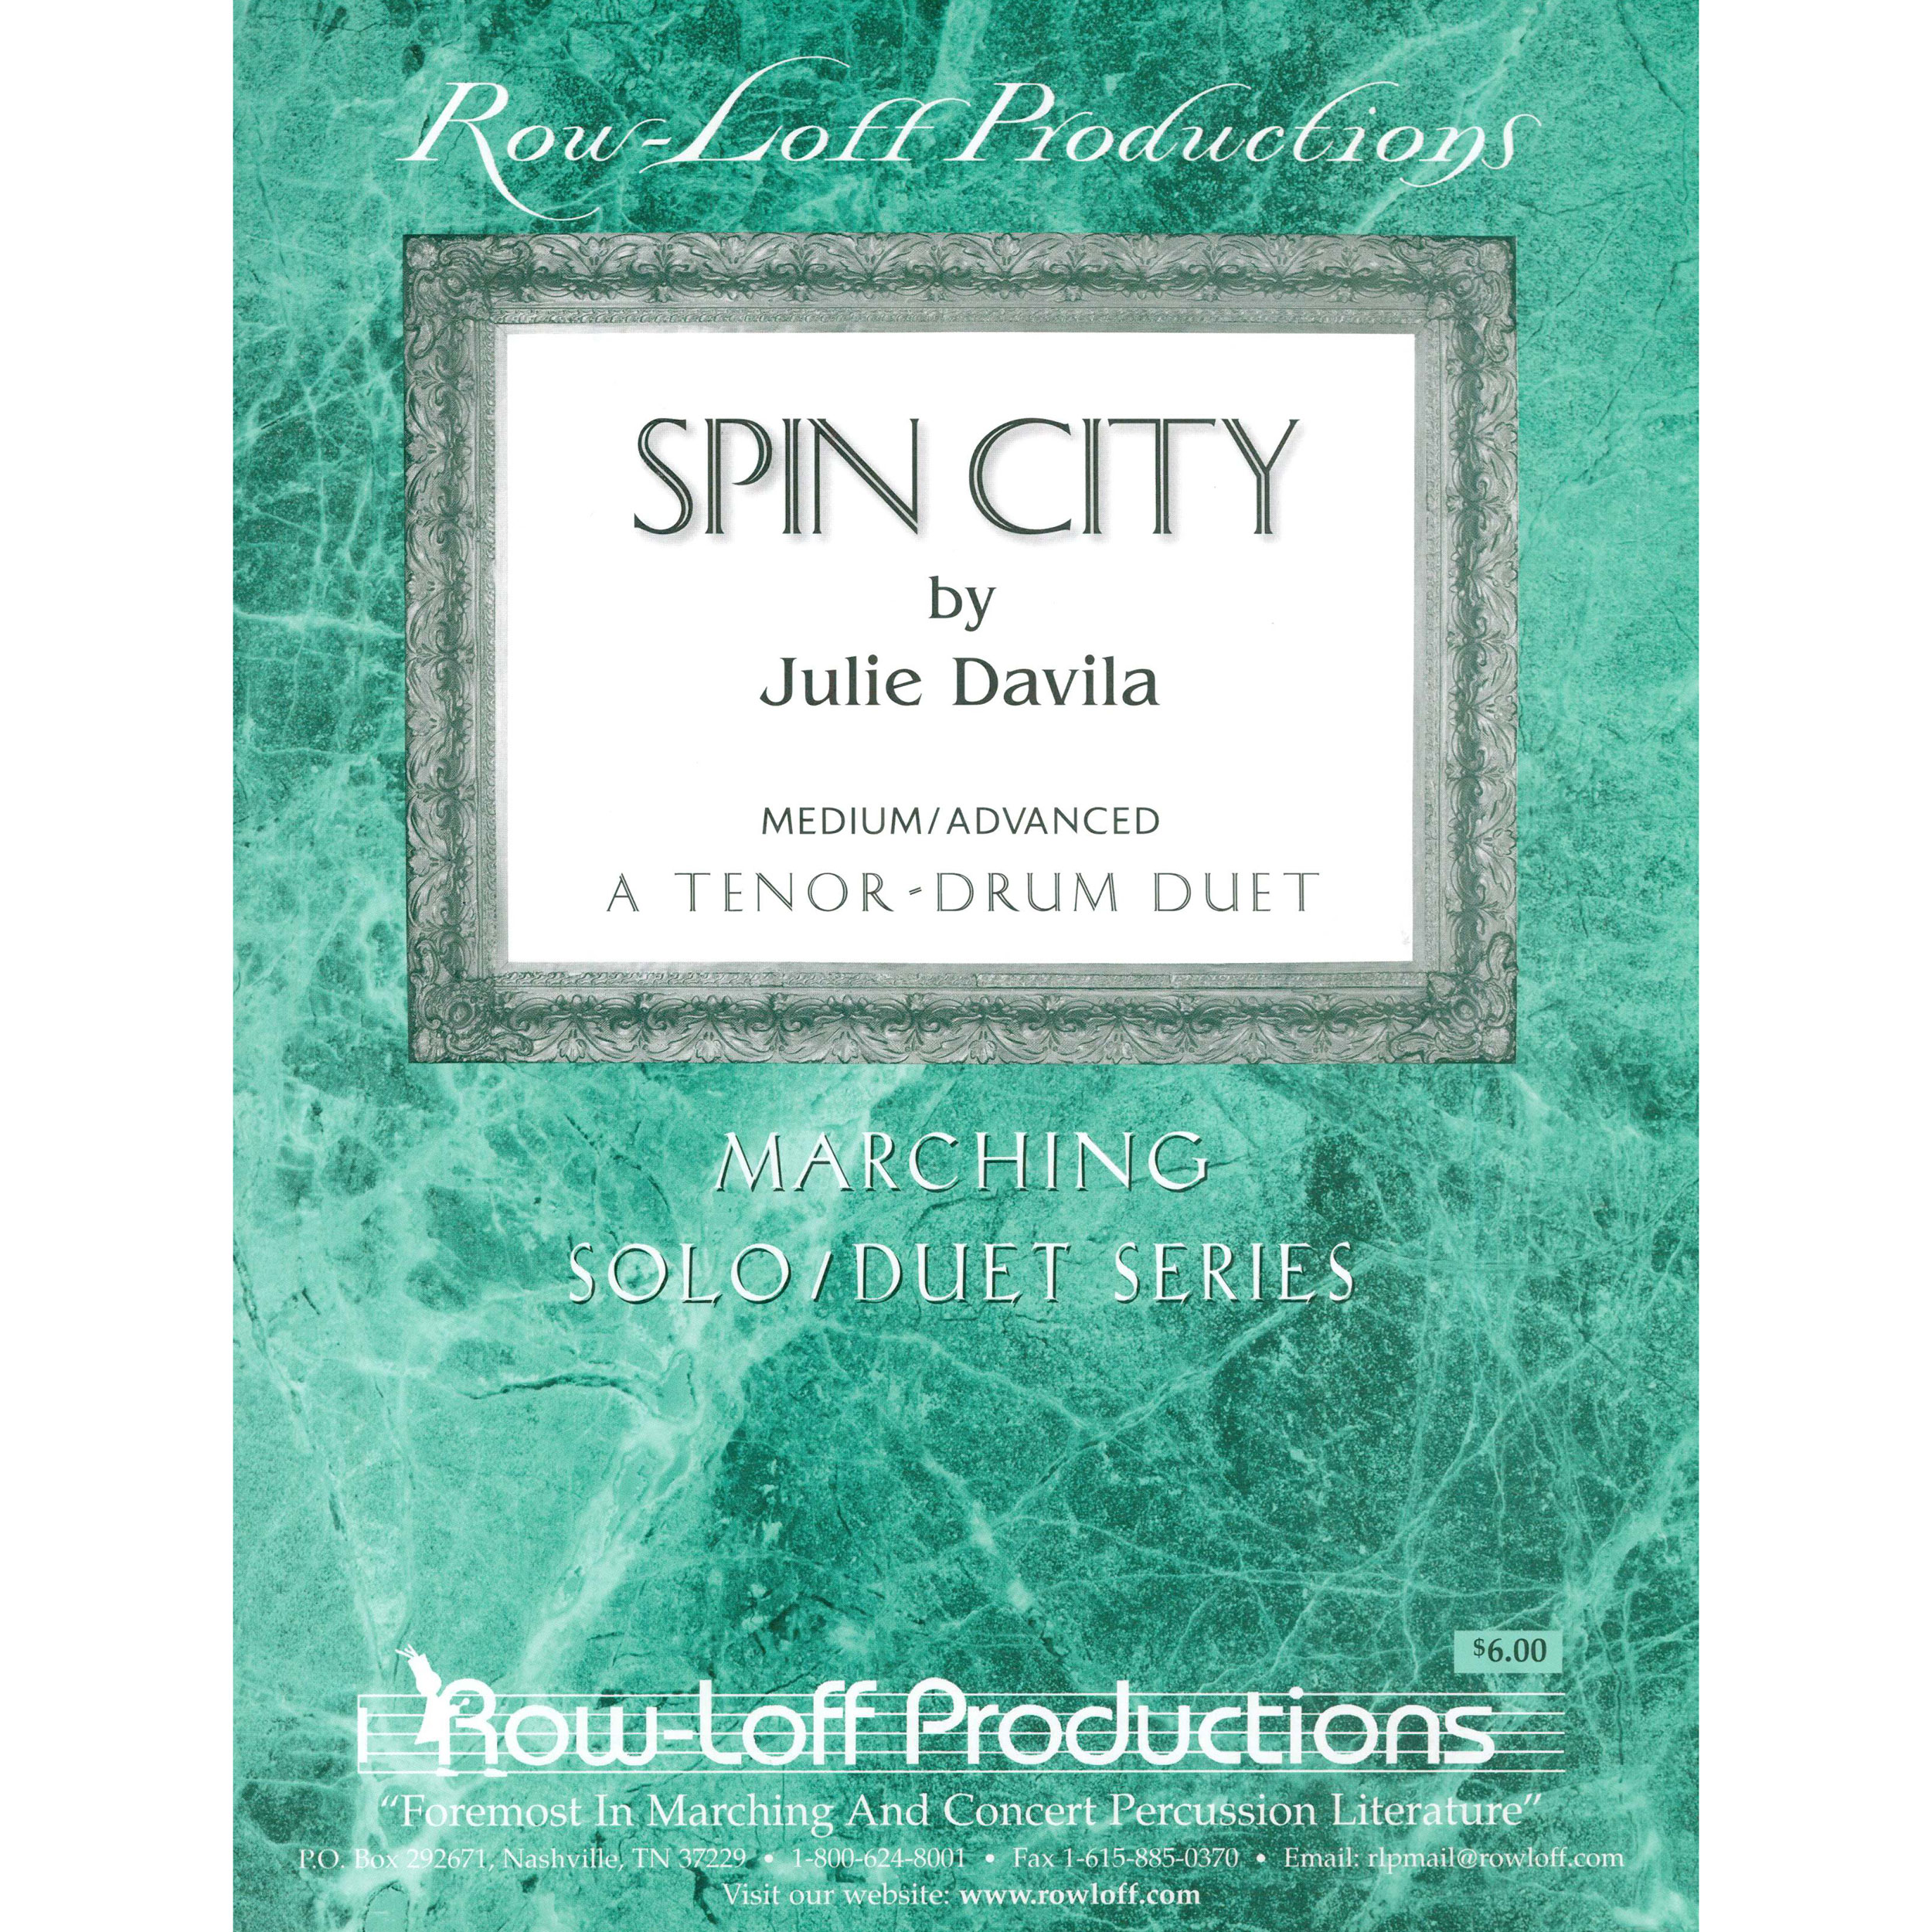 Spin City by Julie Davila